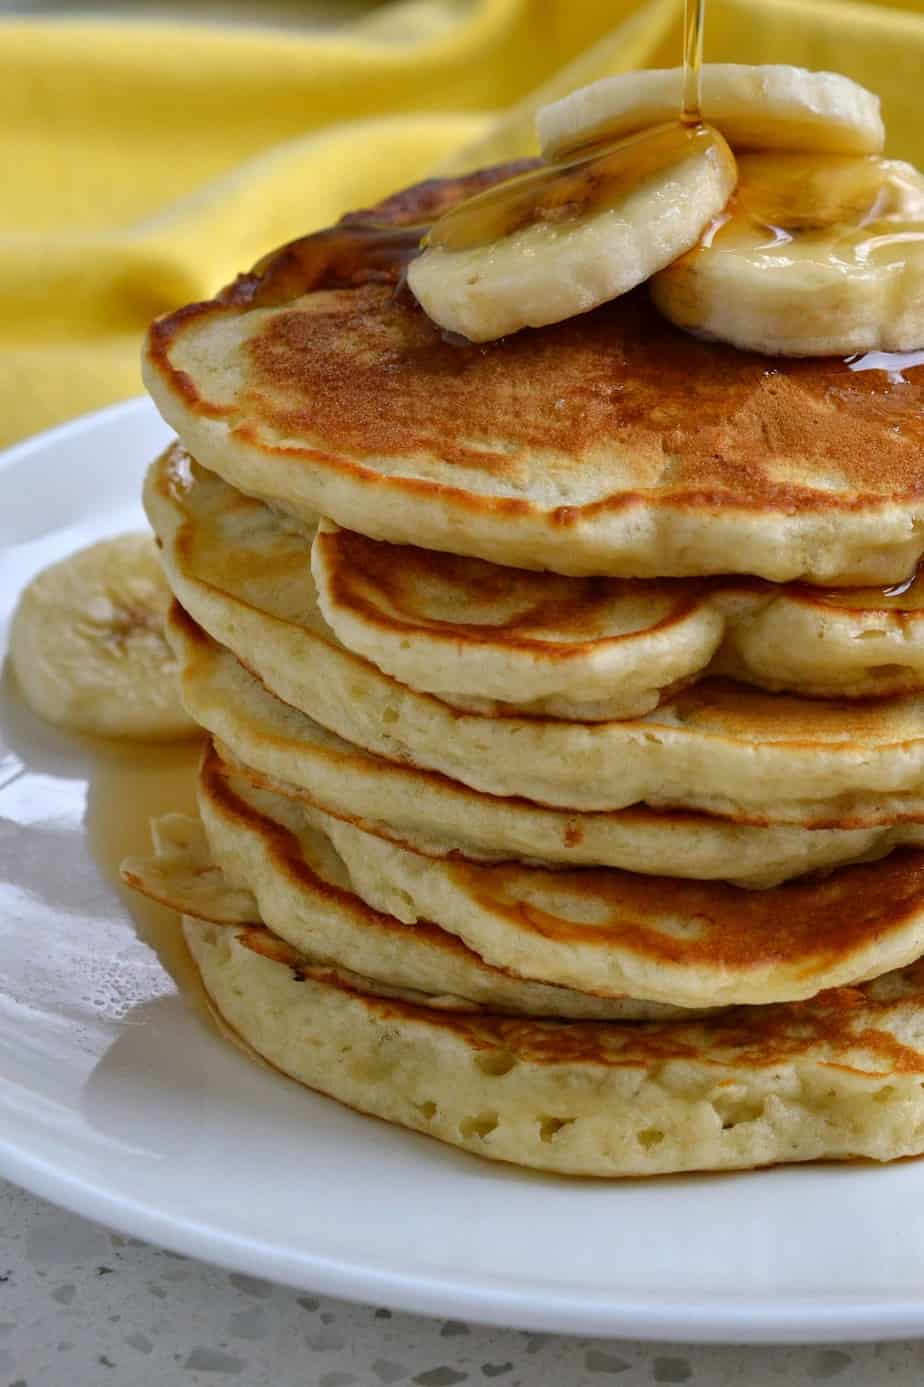 Get your banana fix with these homemade Banana Pancakes made with buttermilk, bananas, vanilla and a touch of cinnamon.